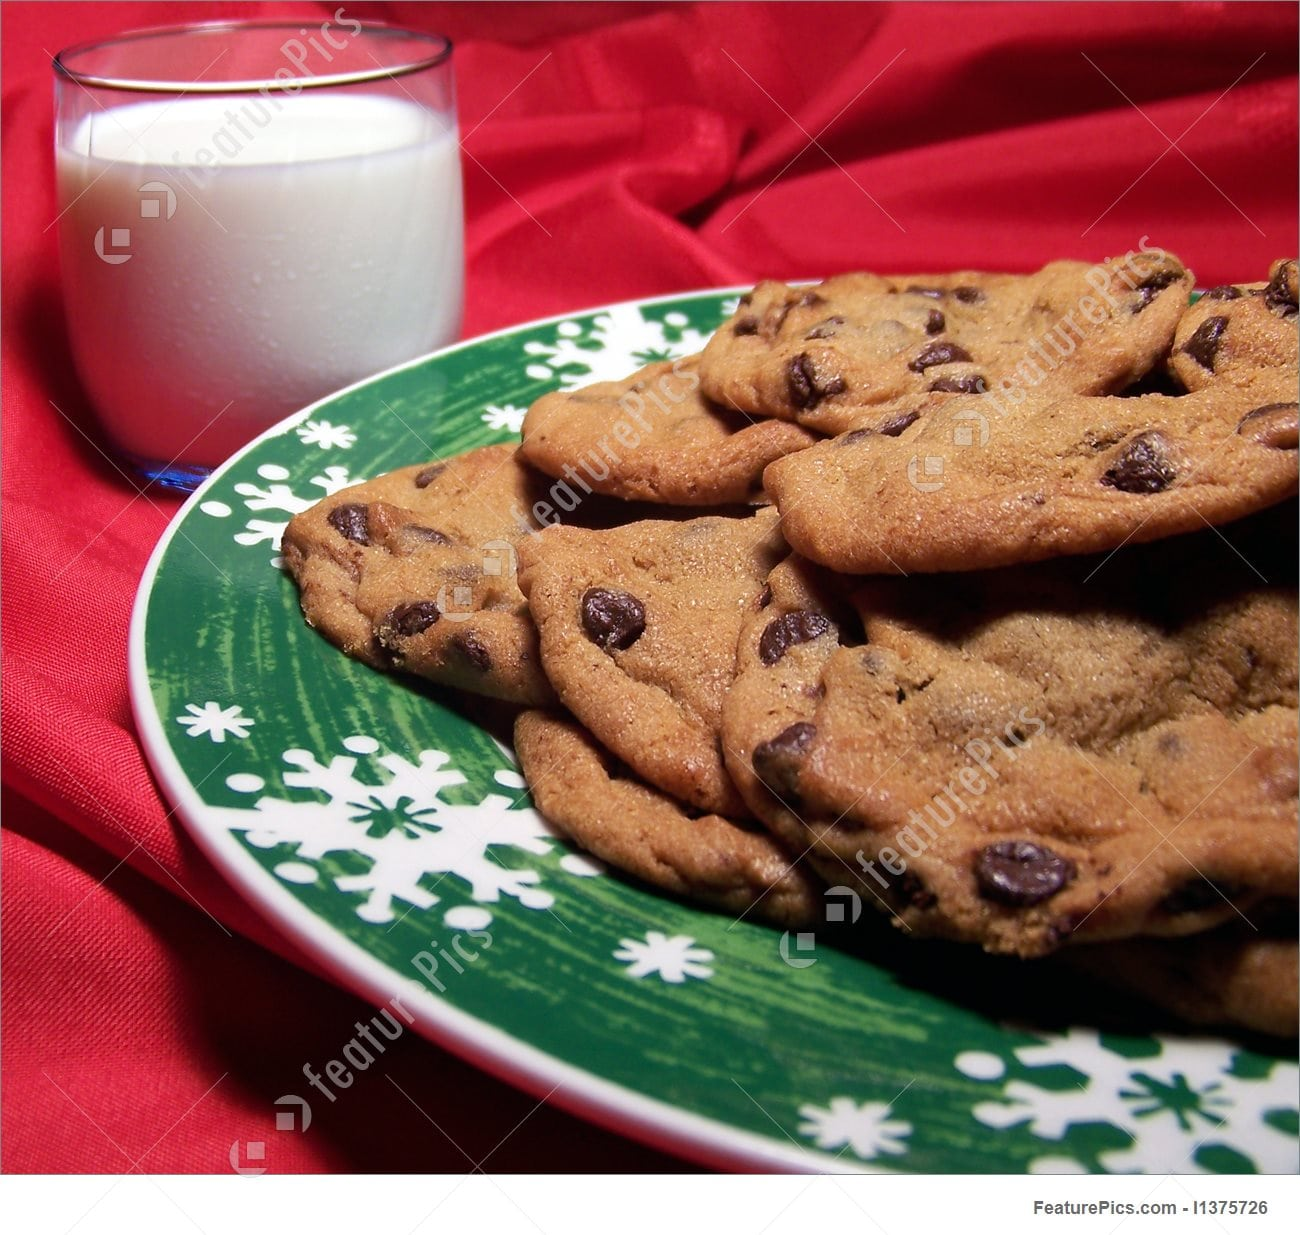 Christmas Chocolate Chip Cookies With Milk Photo